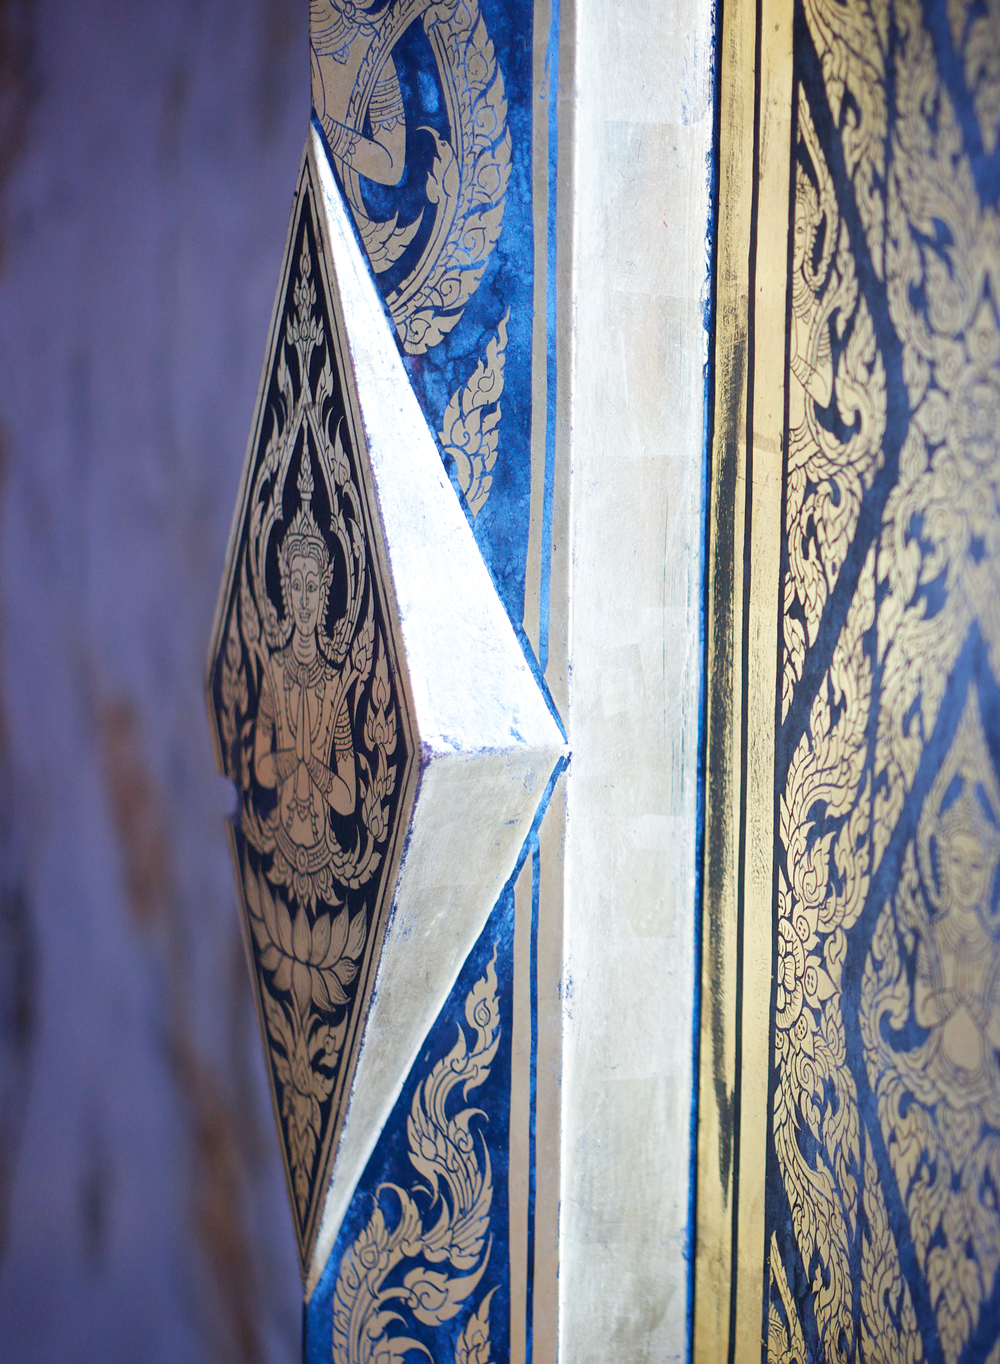 Close-up of a temple door in wonderful city of Chiang Mia. Gold painted on cobalt blue lacquer.